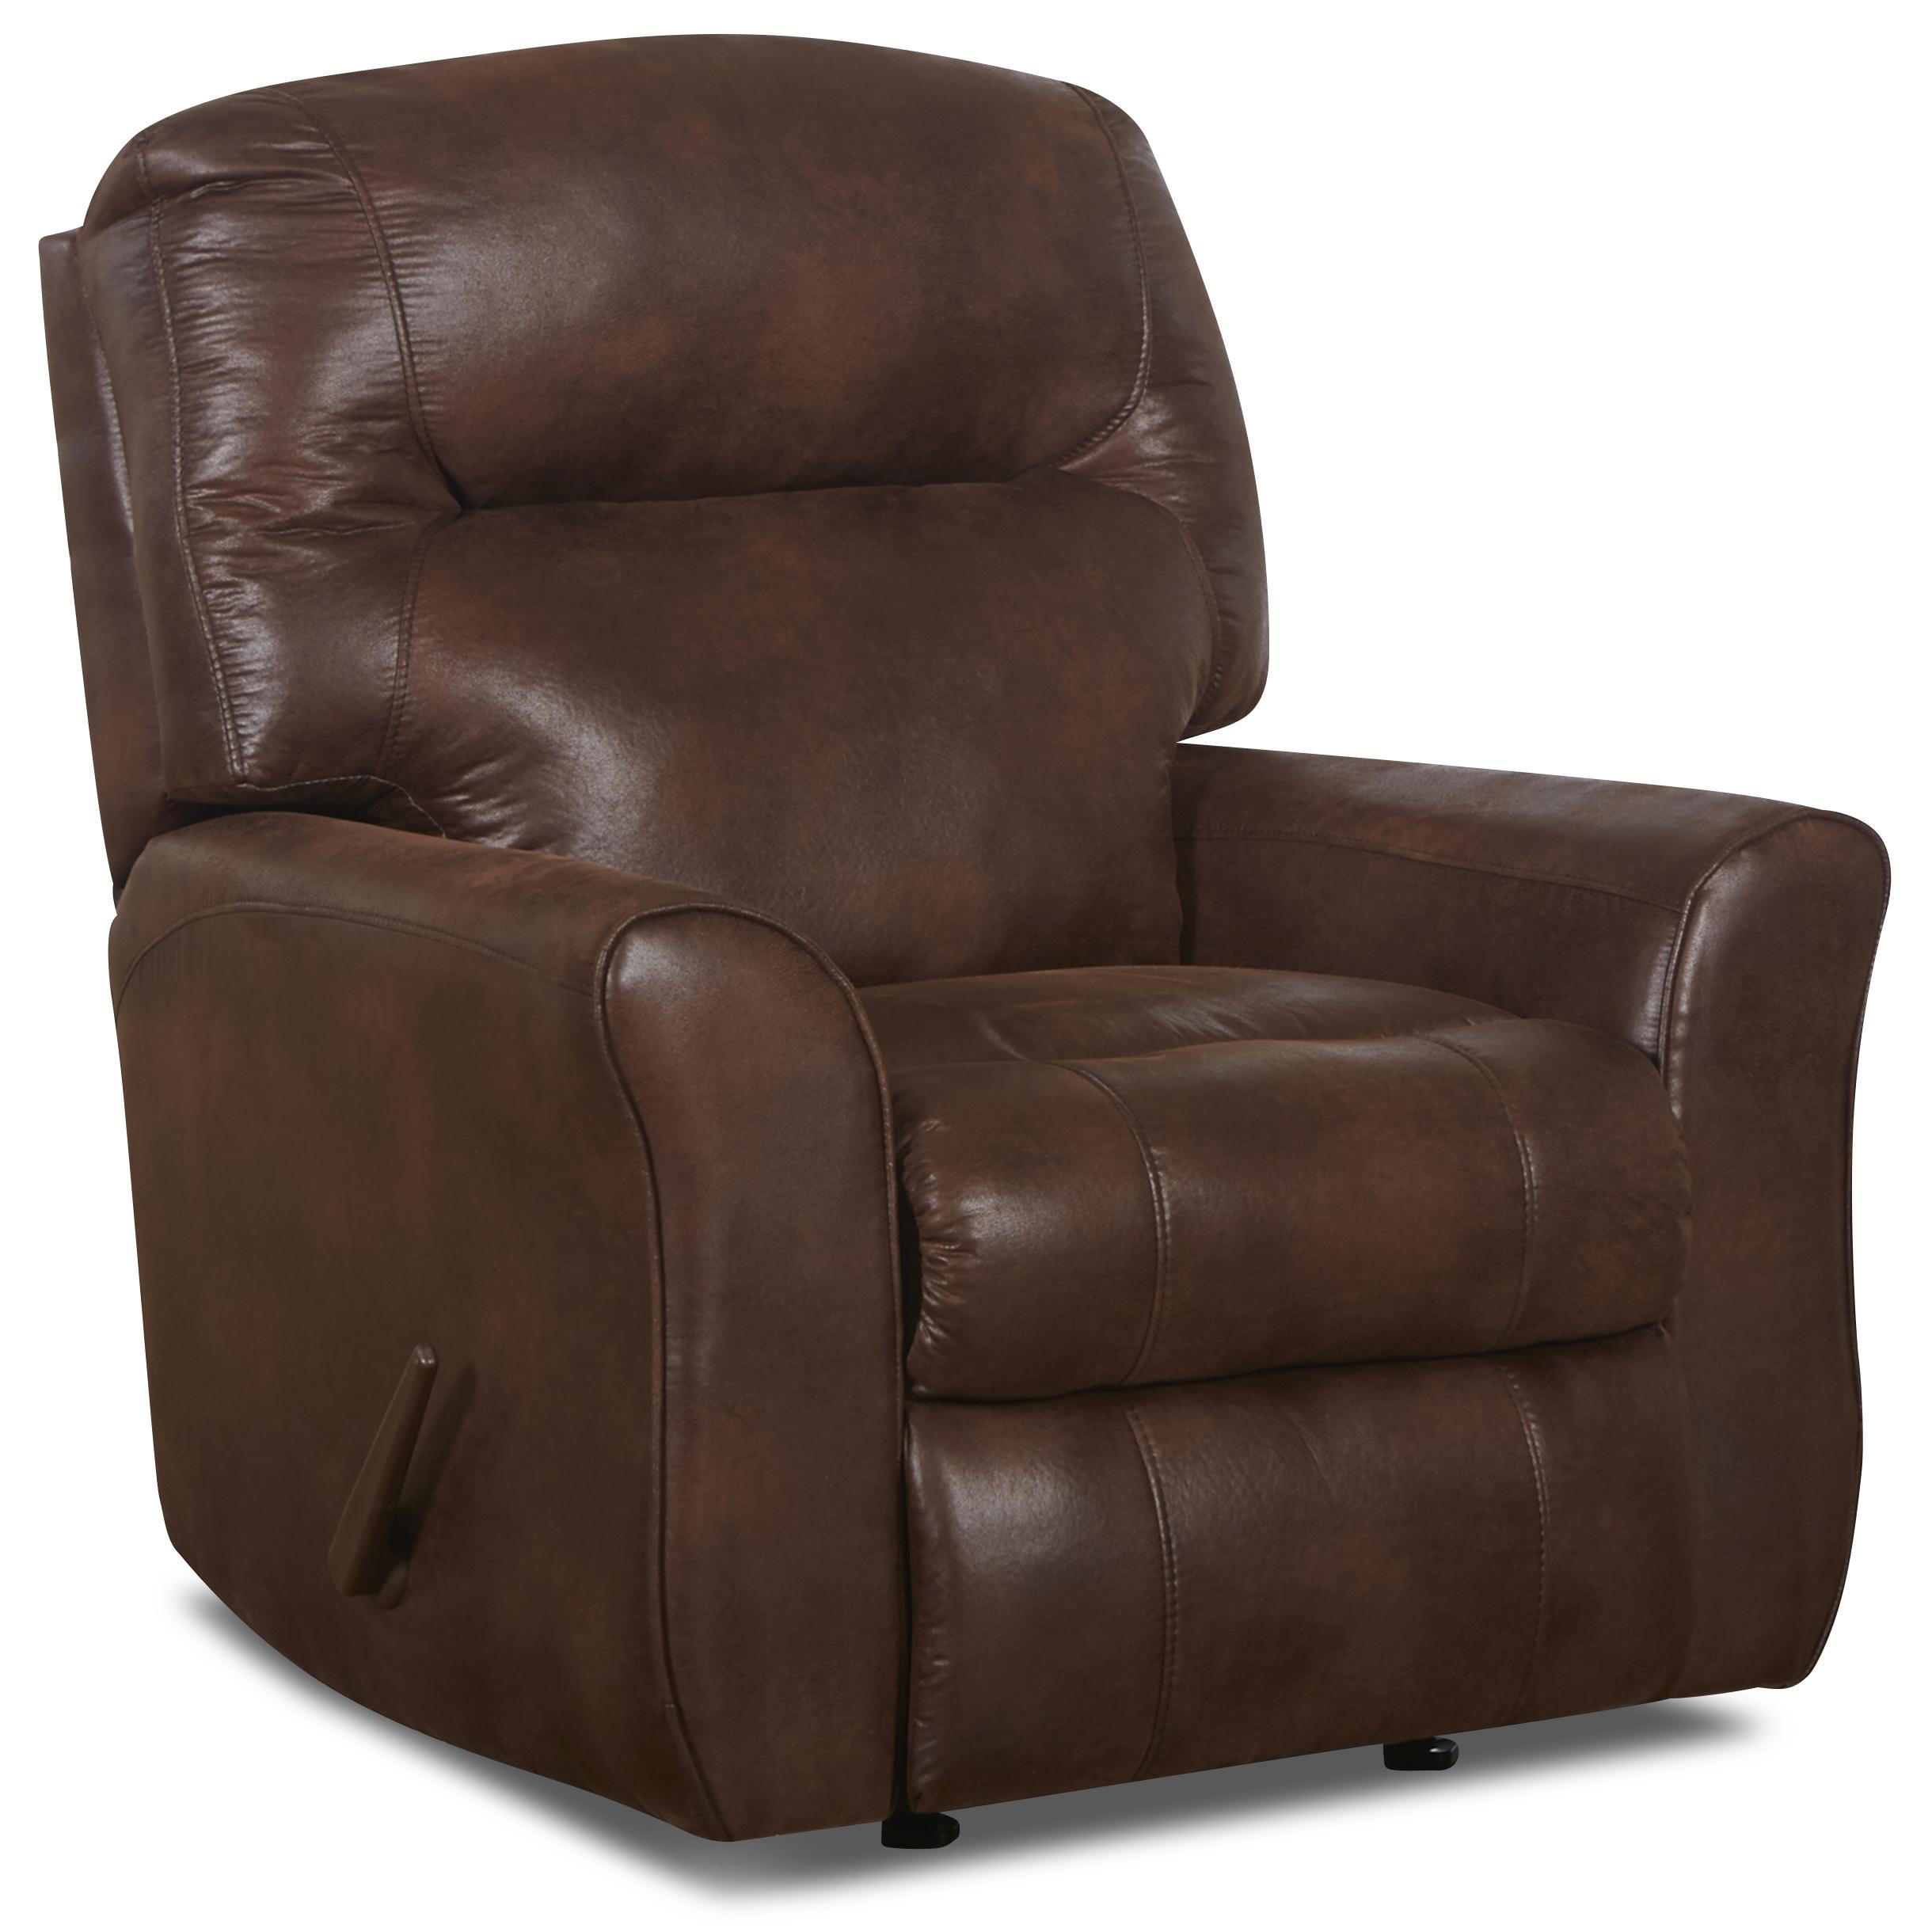 Casual Reclining Rocking Chair with Attached Back Pillows and Outside Handle Activation